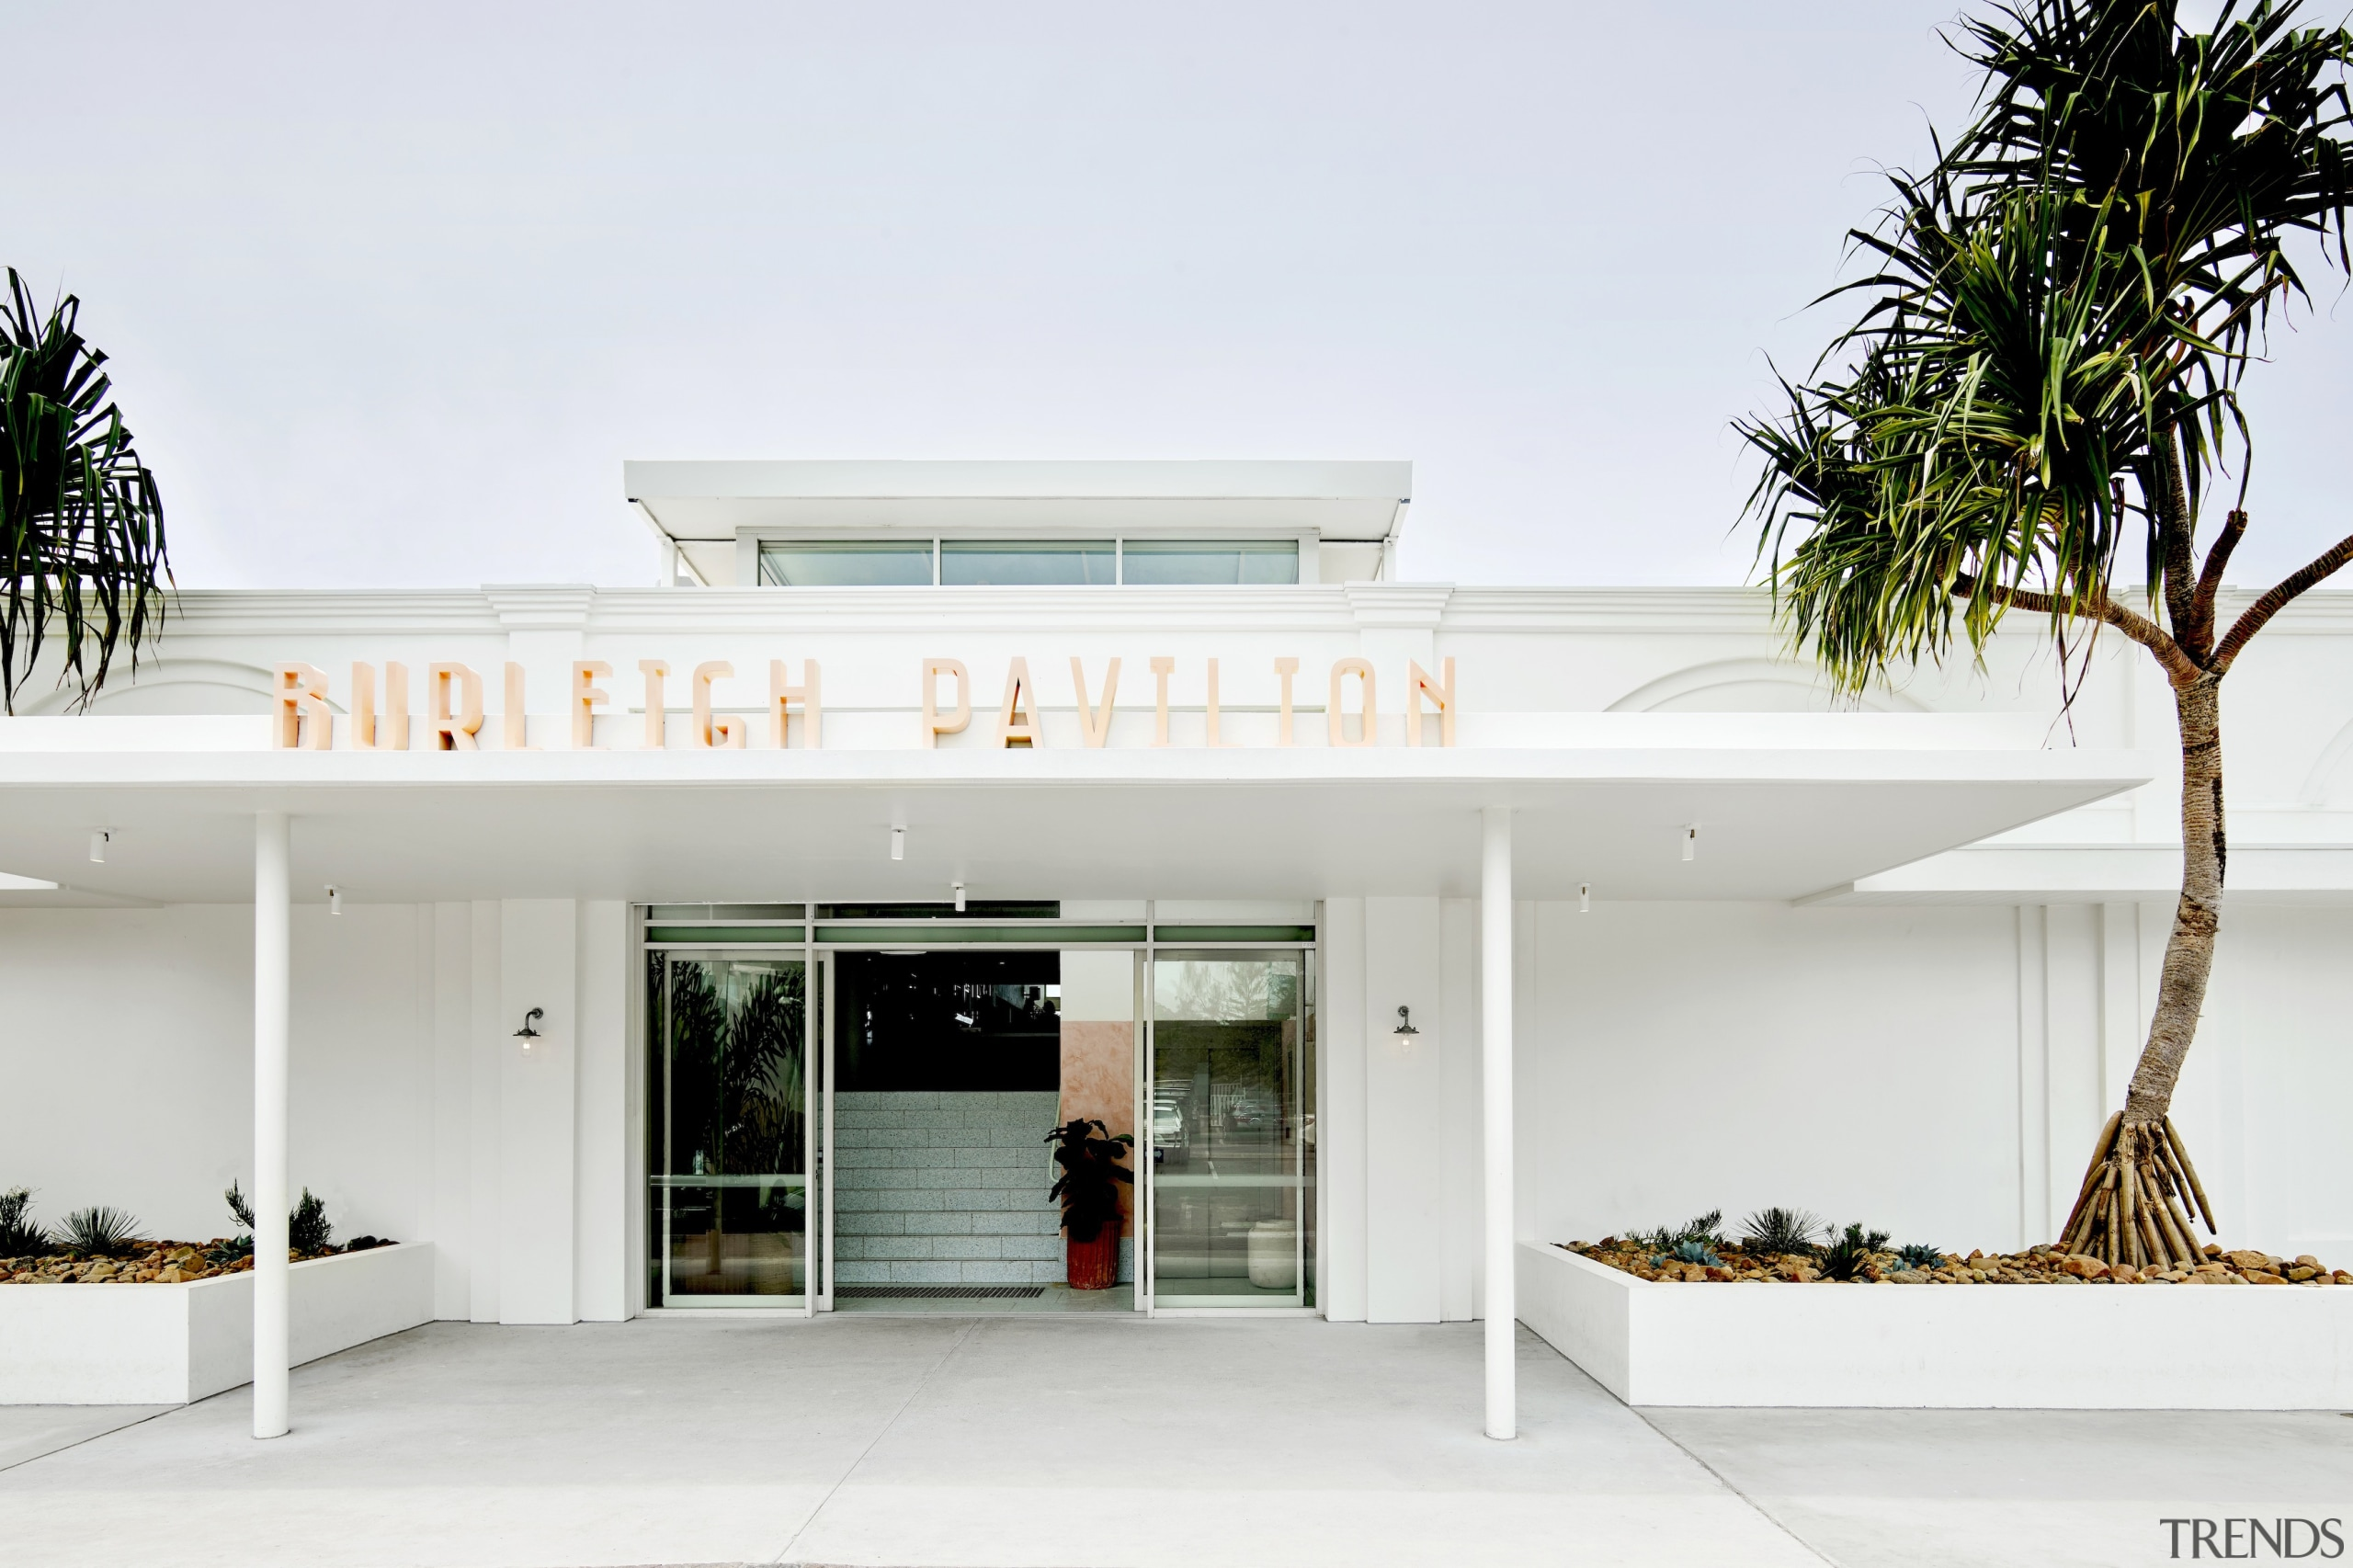 Robust, sun-drenched and faded, the restored and reinvented